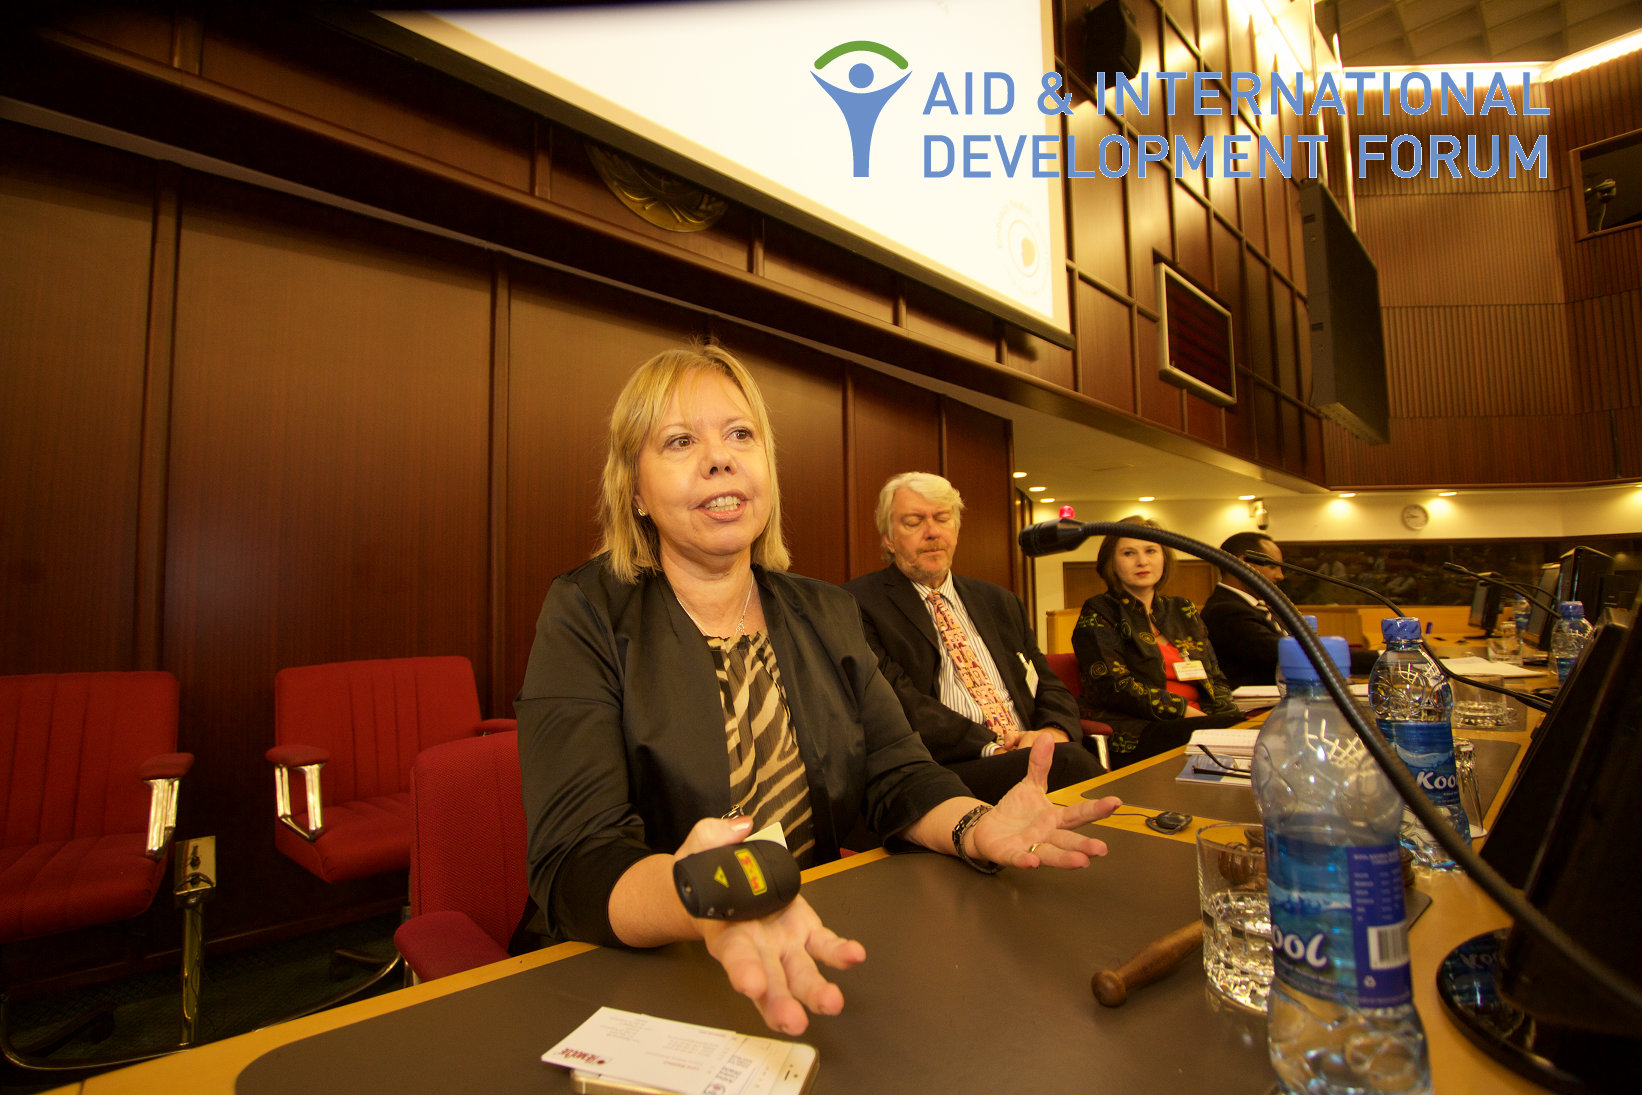 Interview with Lena Wahlhed, Director Alliance Development, HemoCue at AIDF Africa Summit 2016